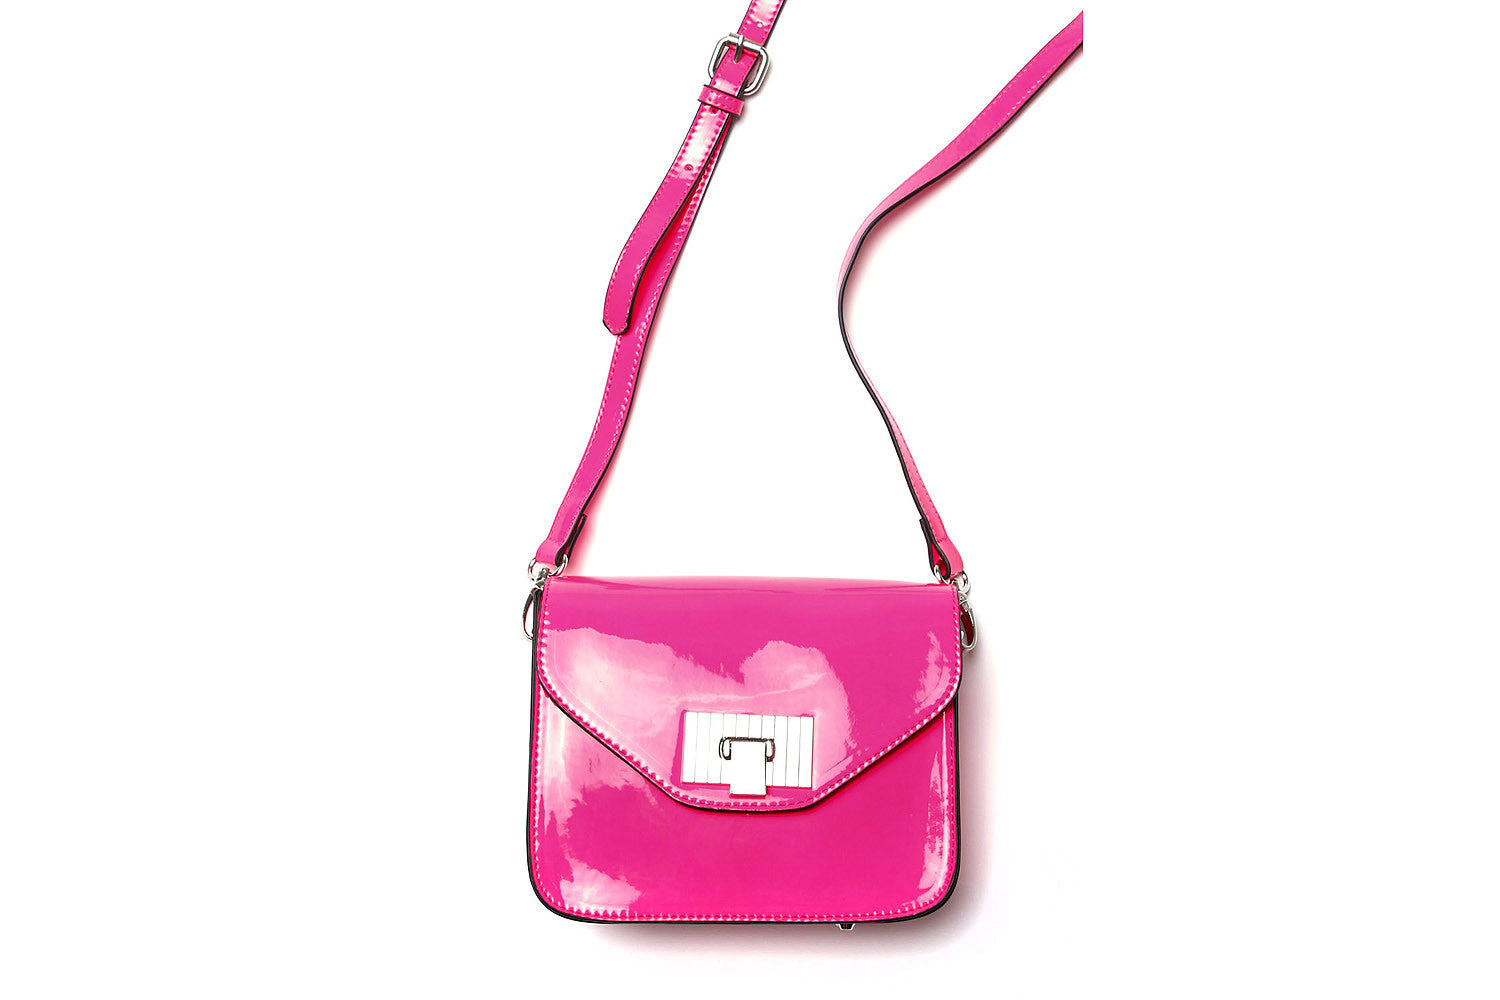 Lauren Patent Mini Messenger Bag (Neon Pink)